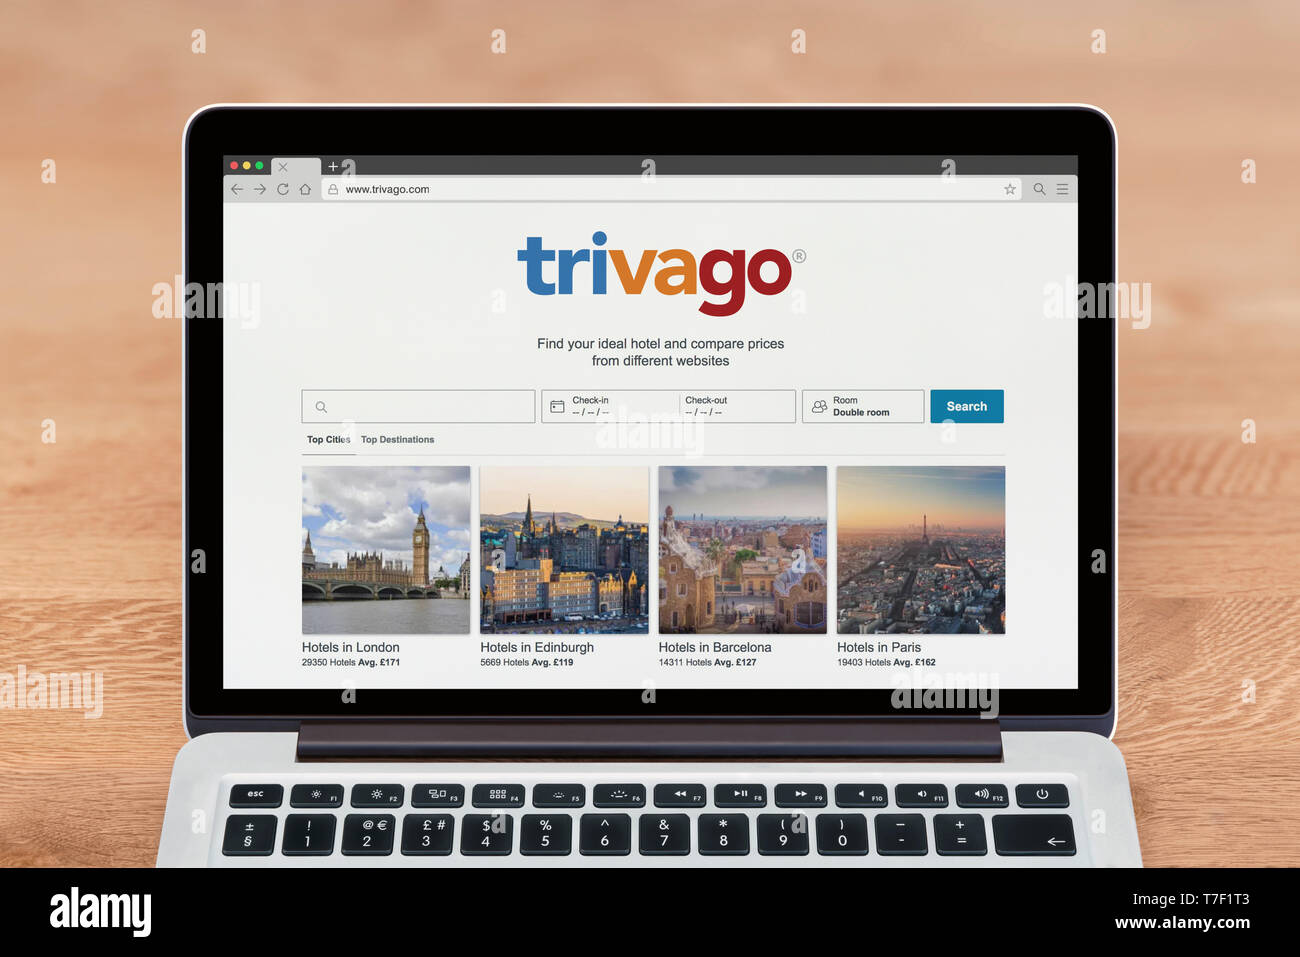 An Apple Macbook displays the Trivago website (Editorial use only). - Stock Image